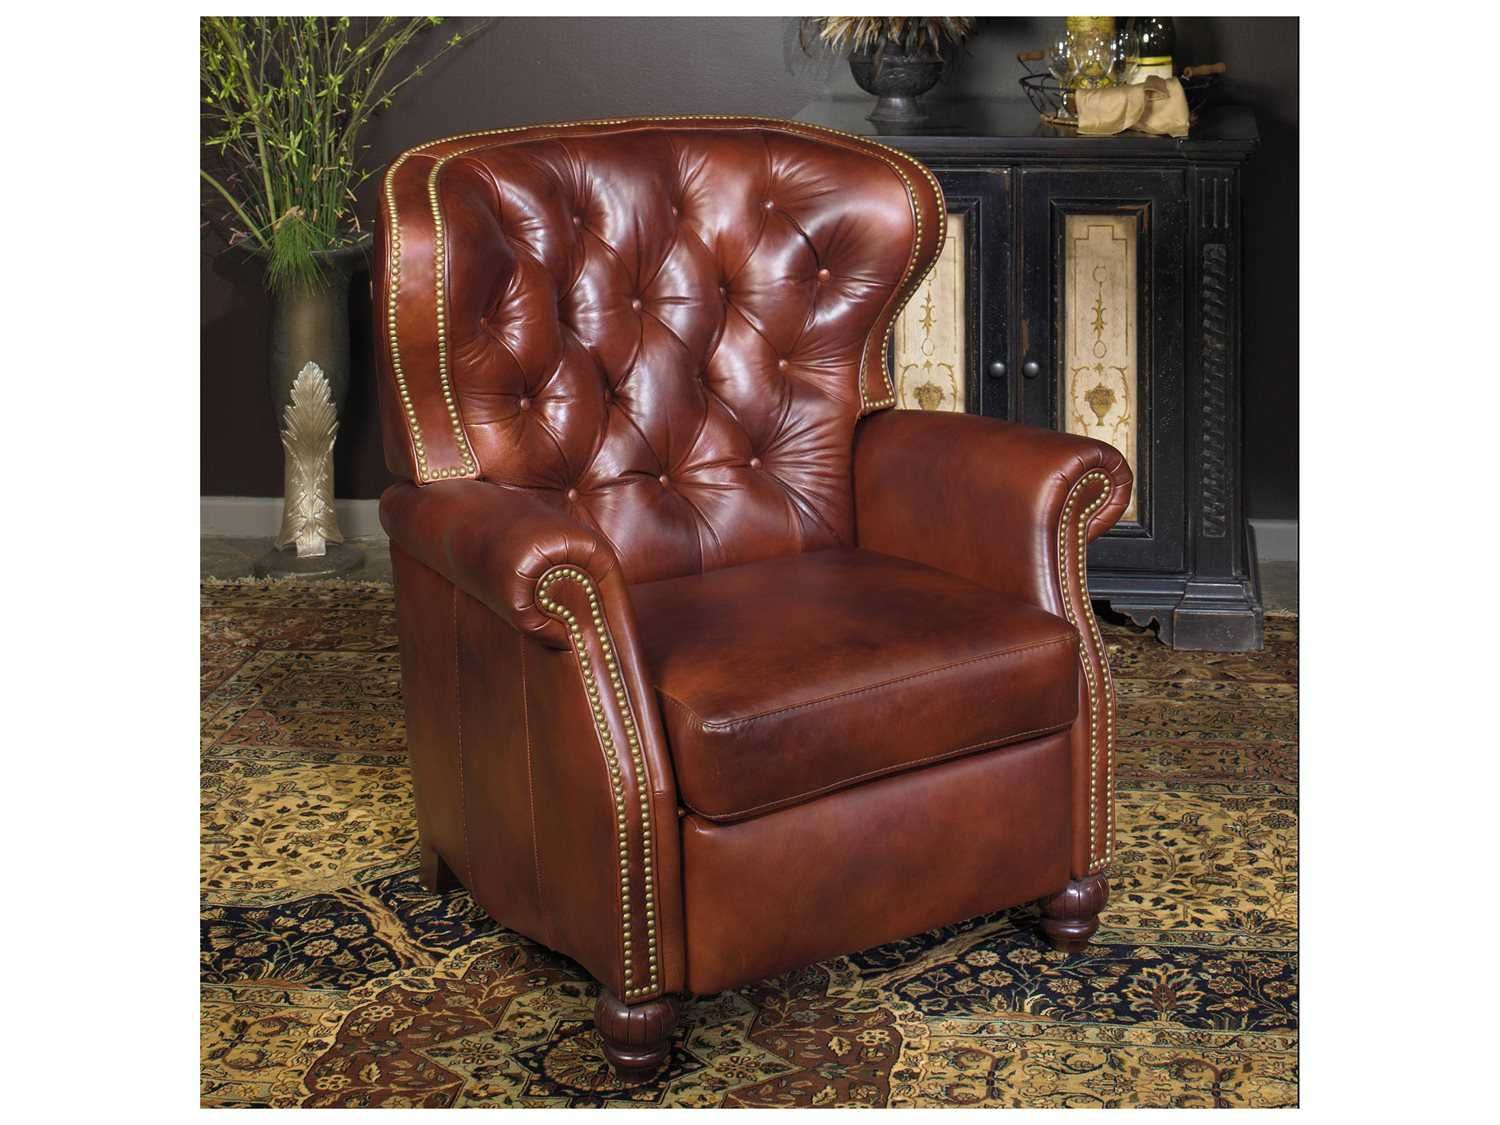 Bradington Young Furniture Recliners Sofas Leather Furniture Leather Furniture Detail Furniture